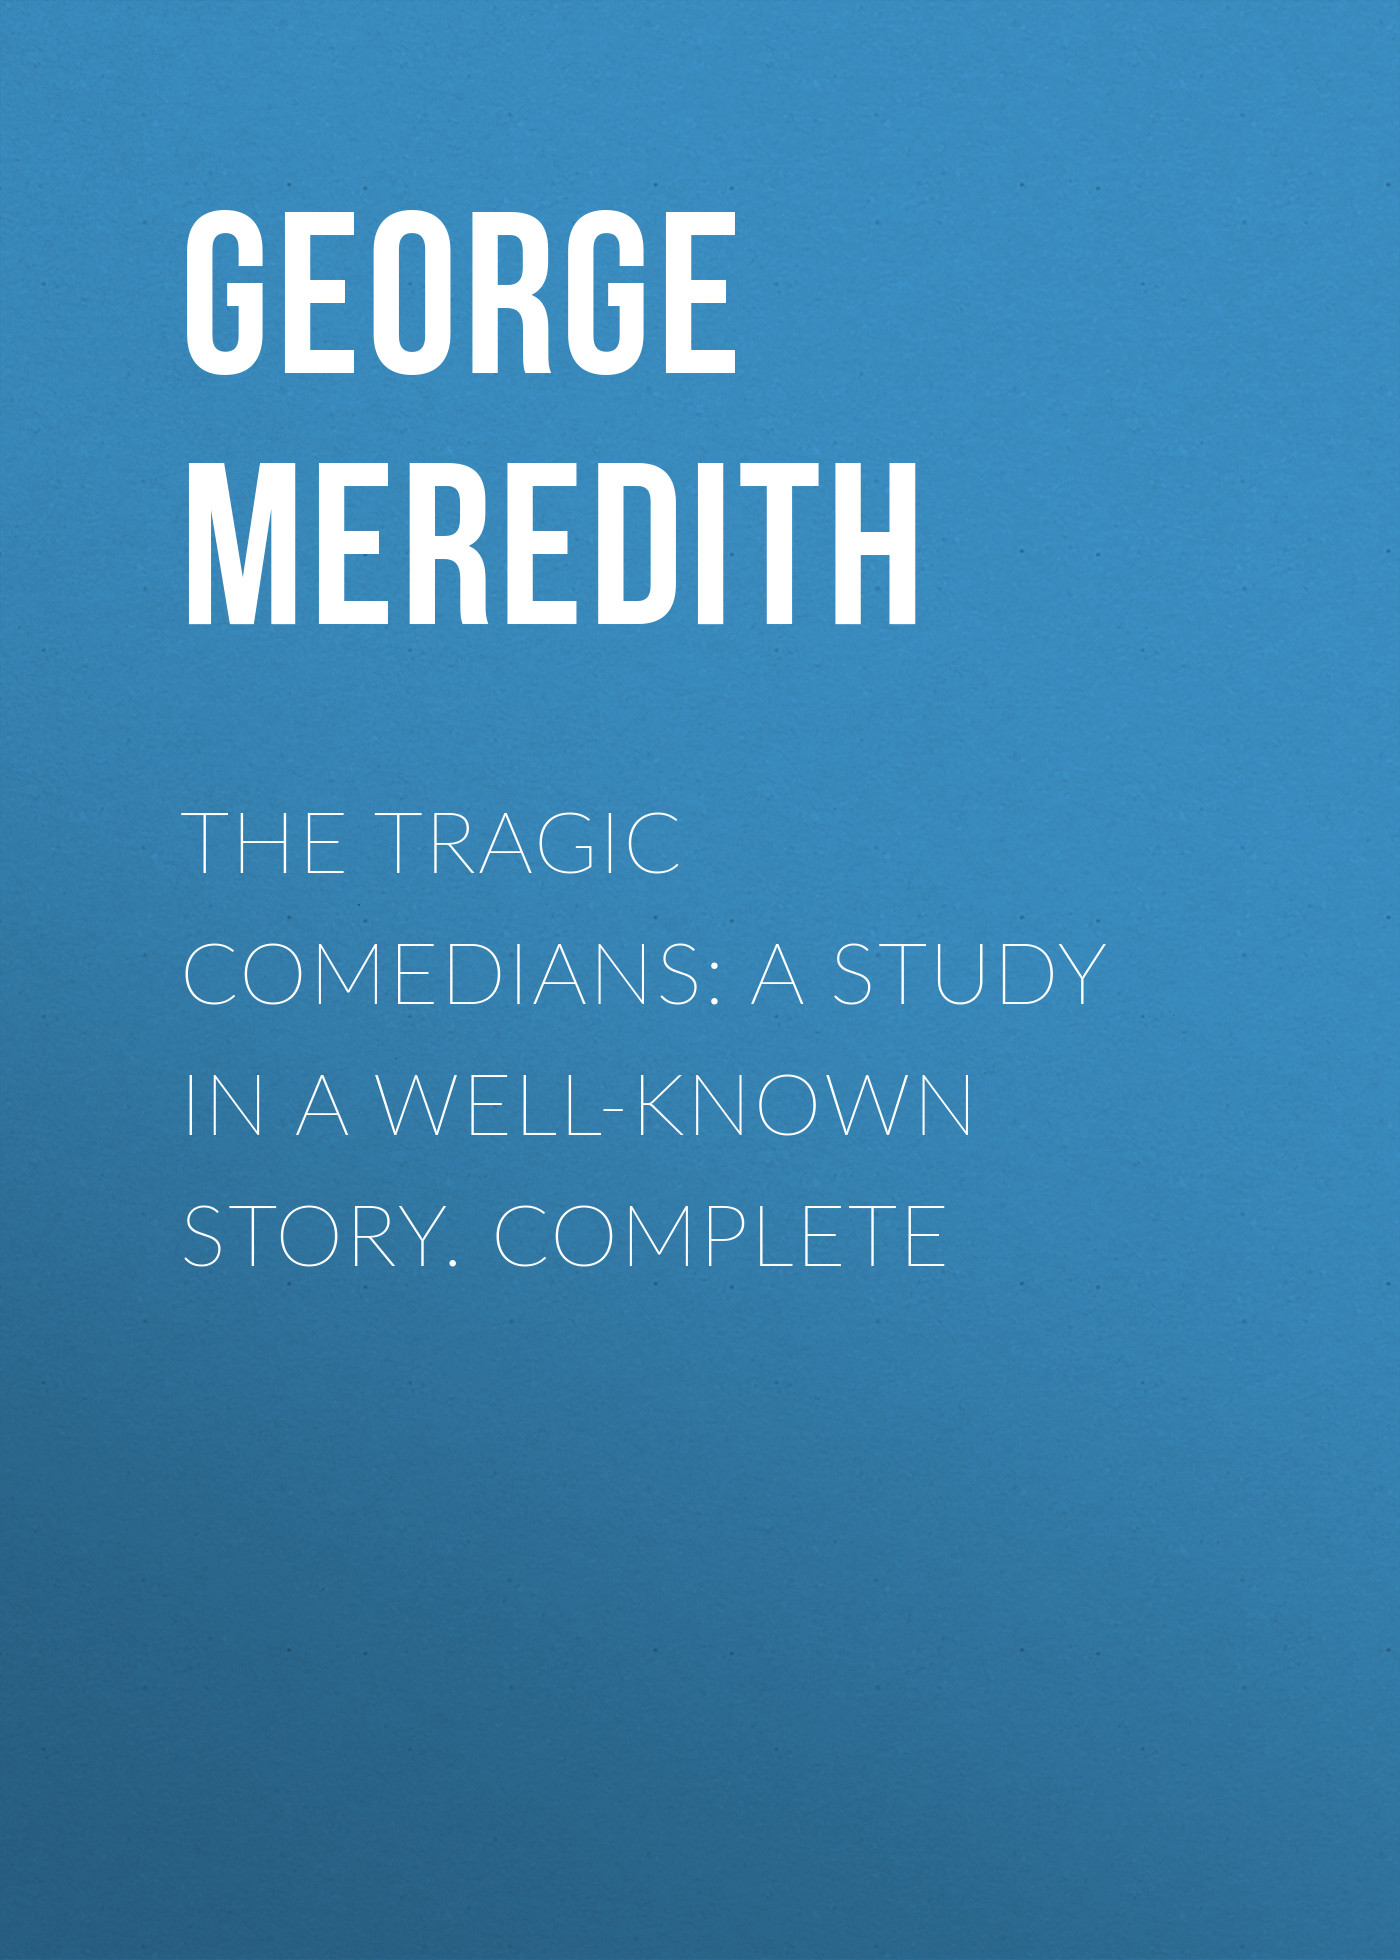 George Meredith The Tragic Comedians: A Study in a Well-known Story. Complete